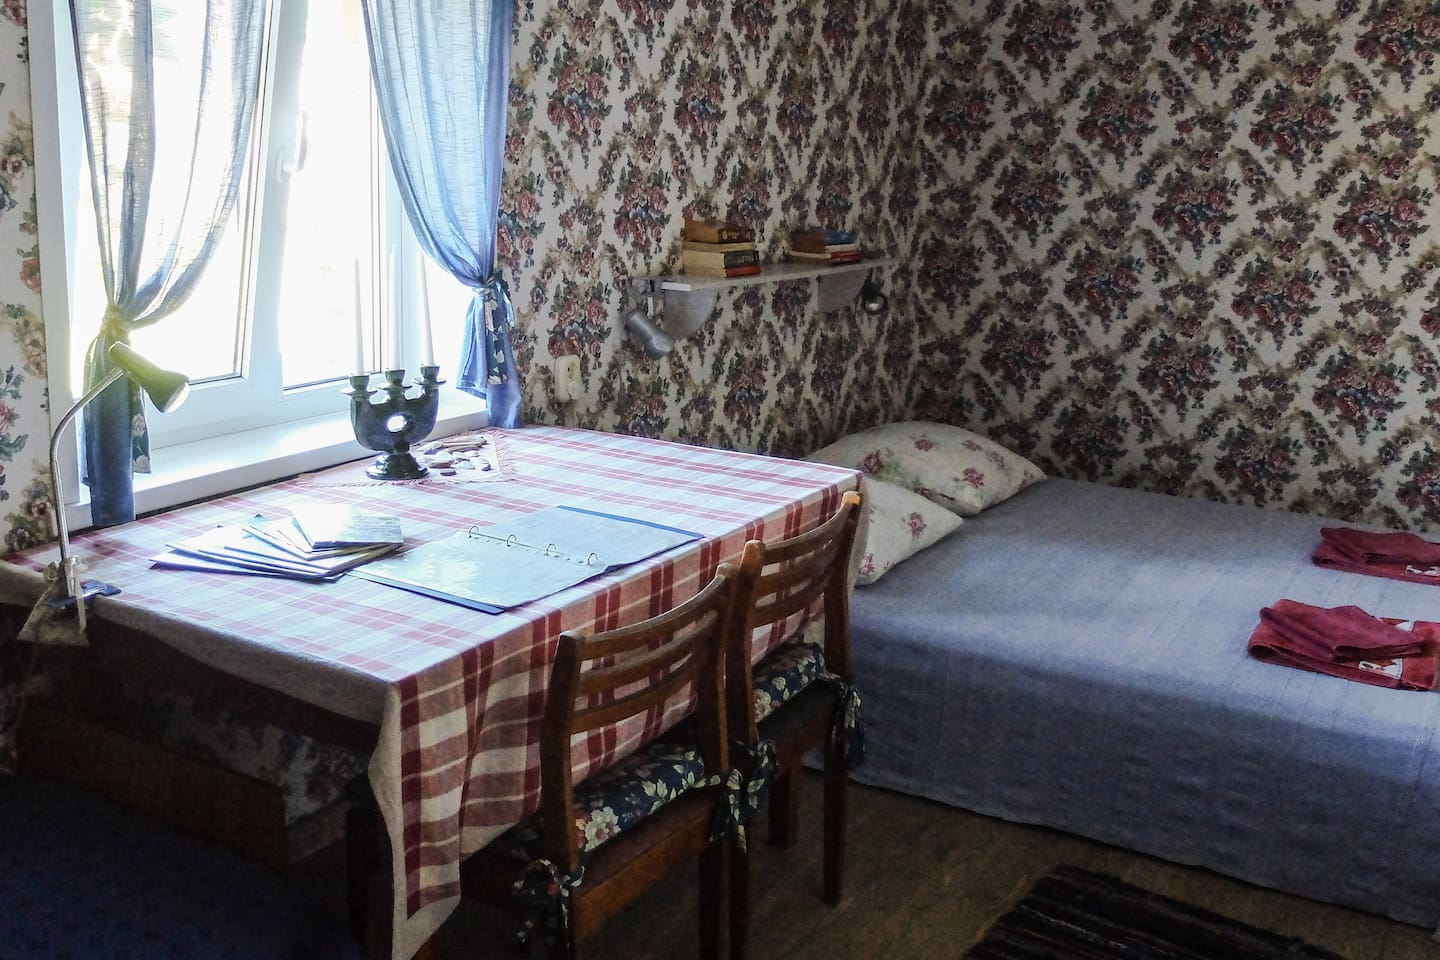 Romantic room with double bed, writing desk and clothes rack